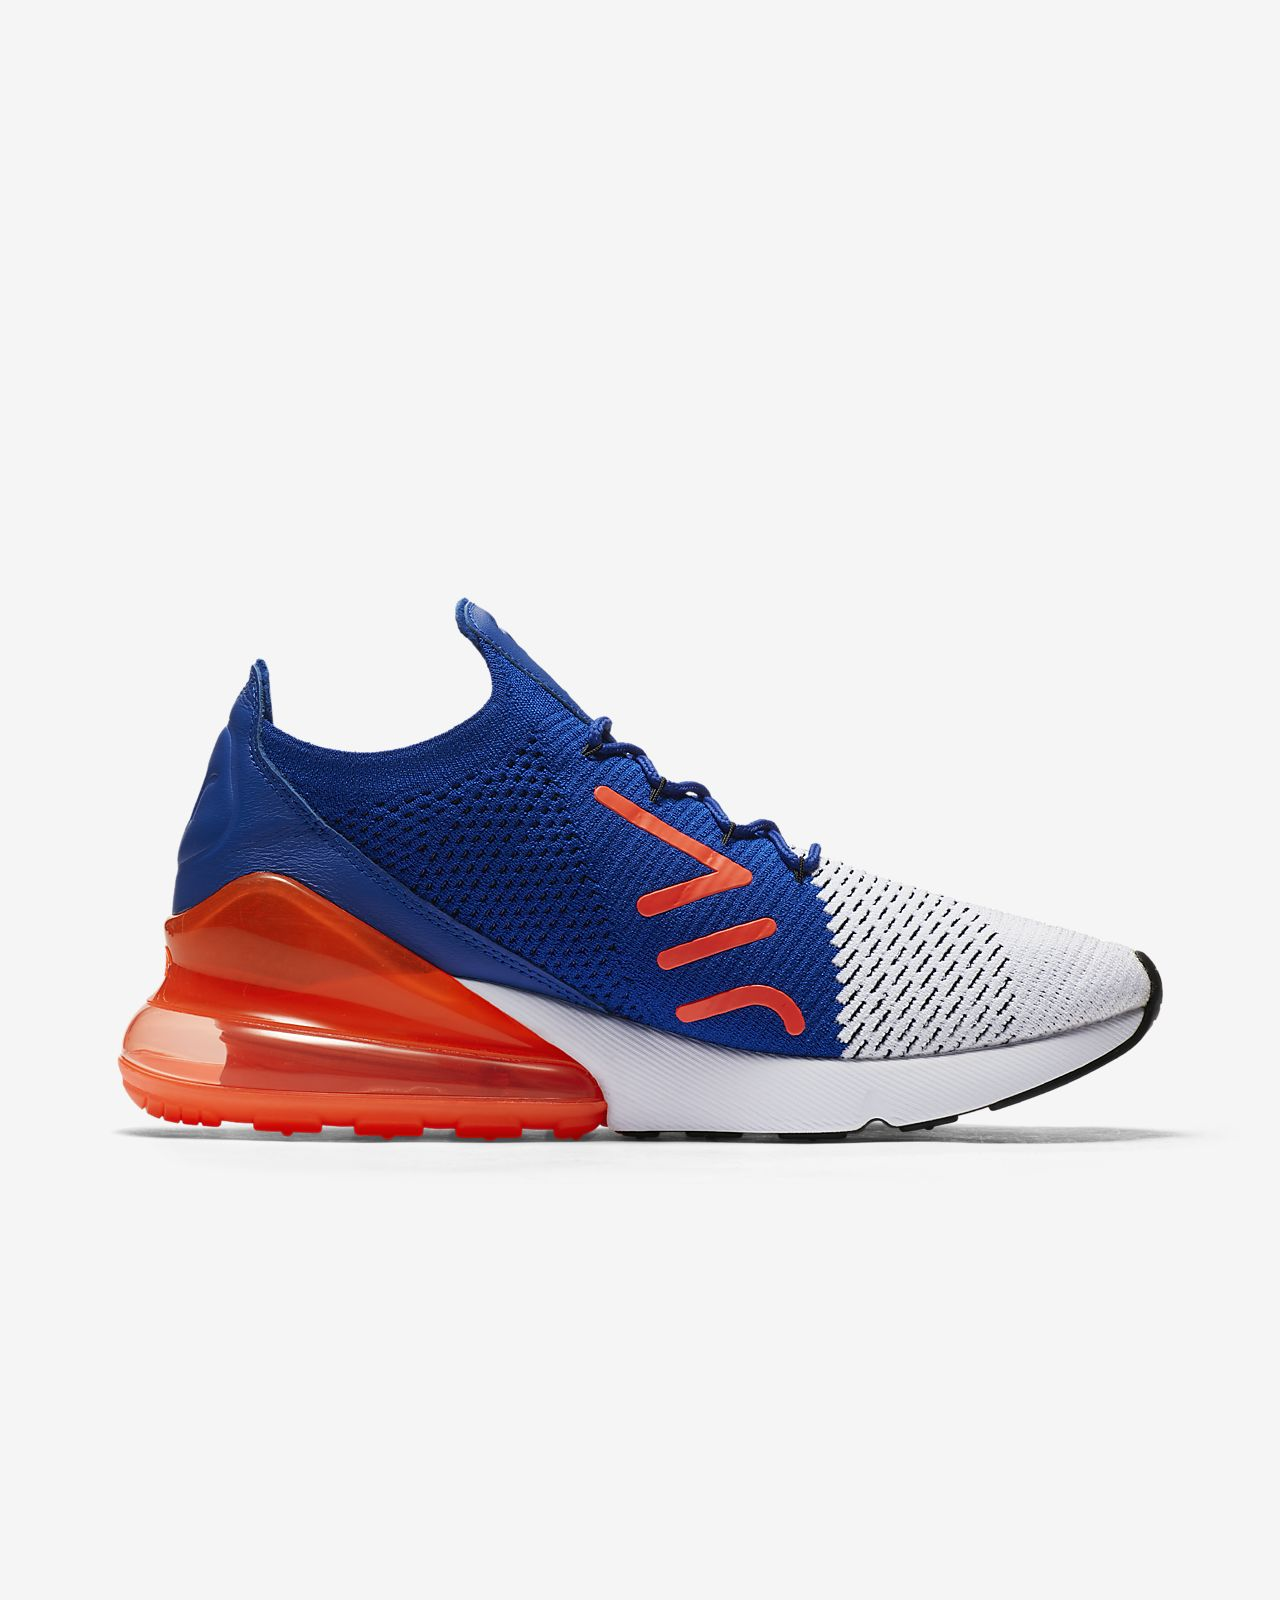 new concept 9c3dd 624b2 ... Chaussure Nike Air Max 270 Flyknit pour Homme